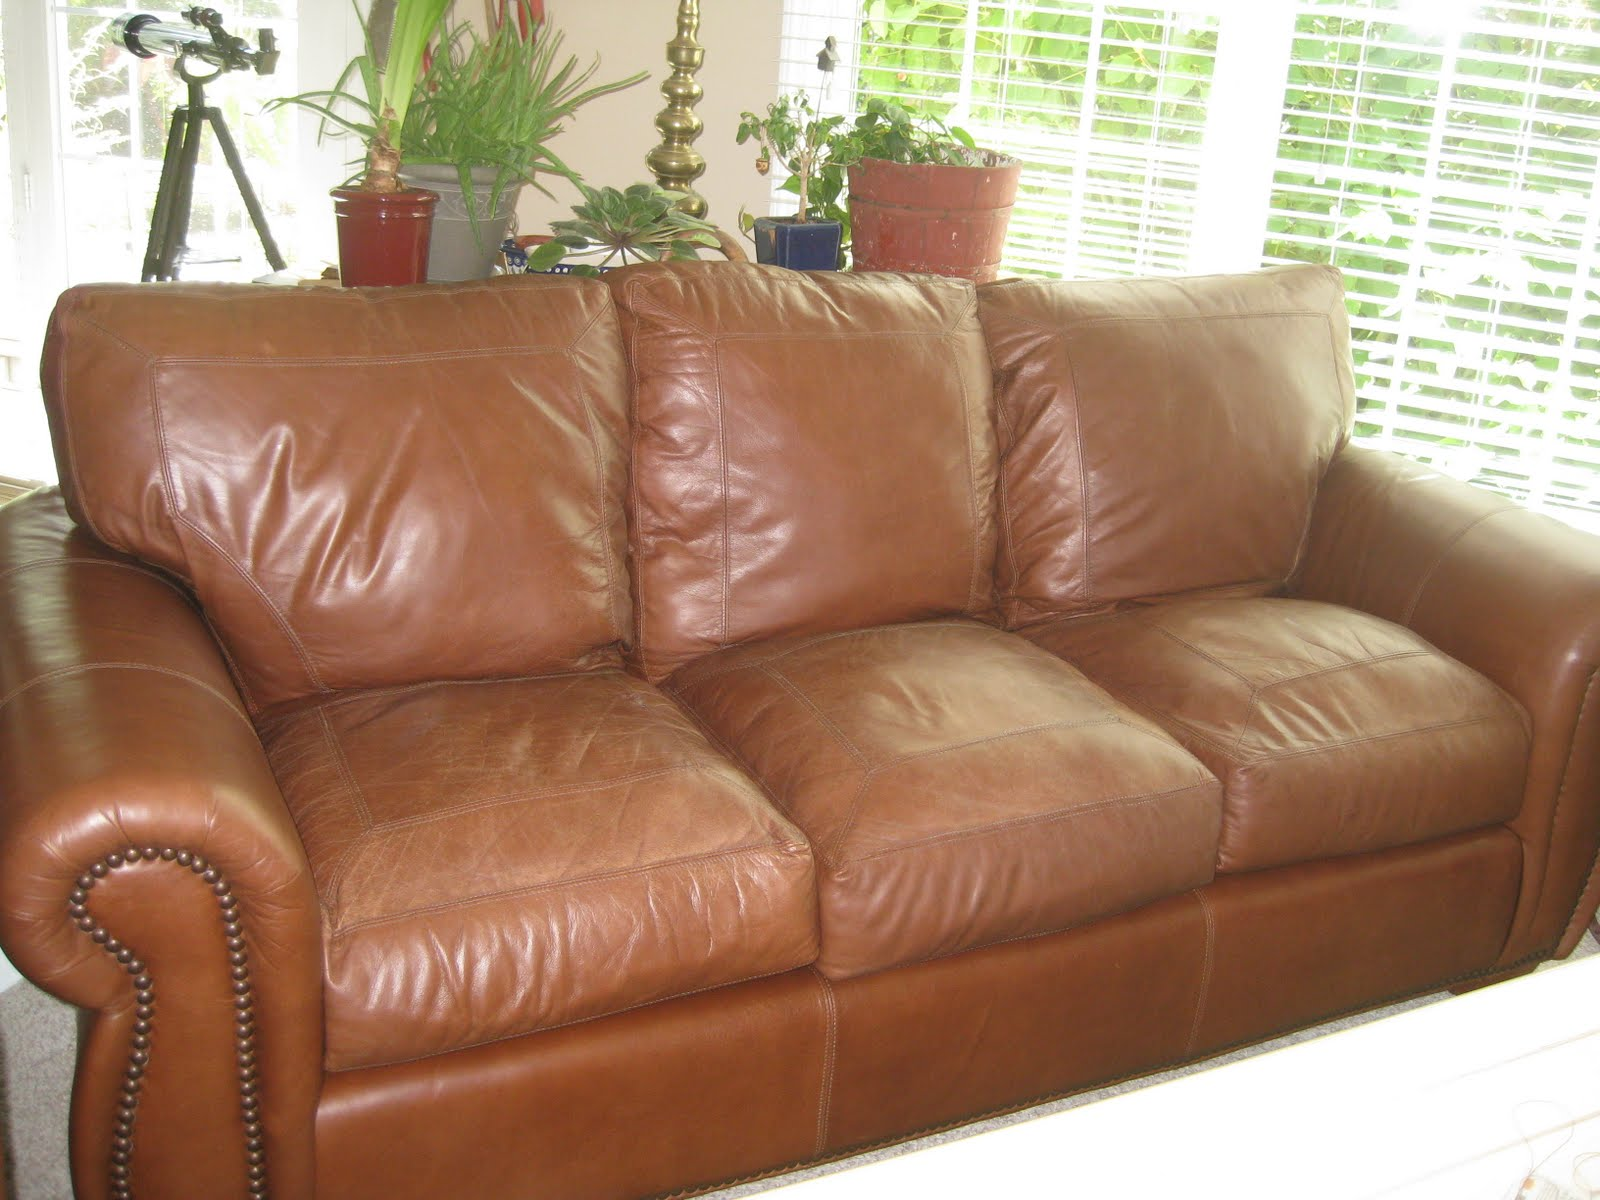 Old Couches 8 16 10 Im Like An Old Leather Couch Lap Band Groupie